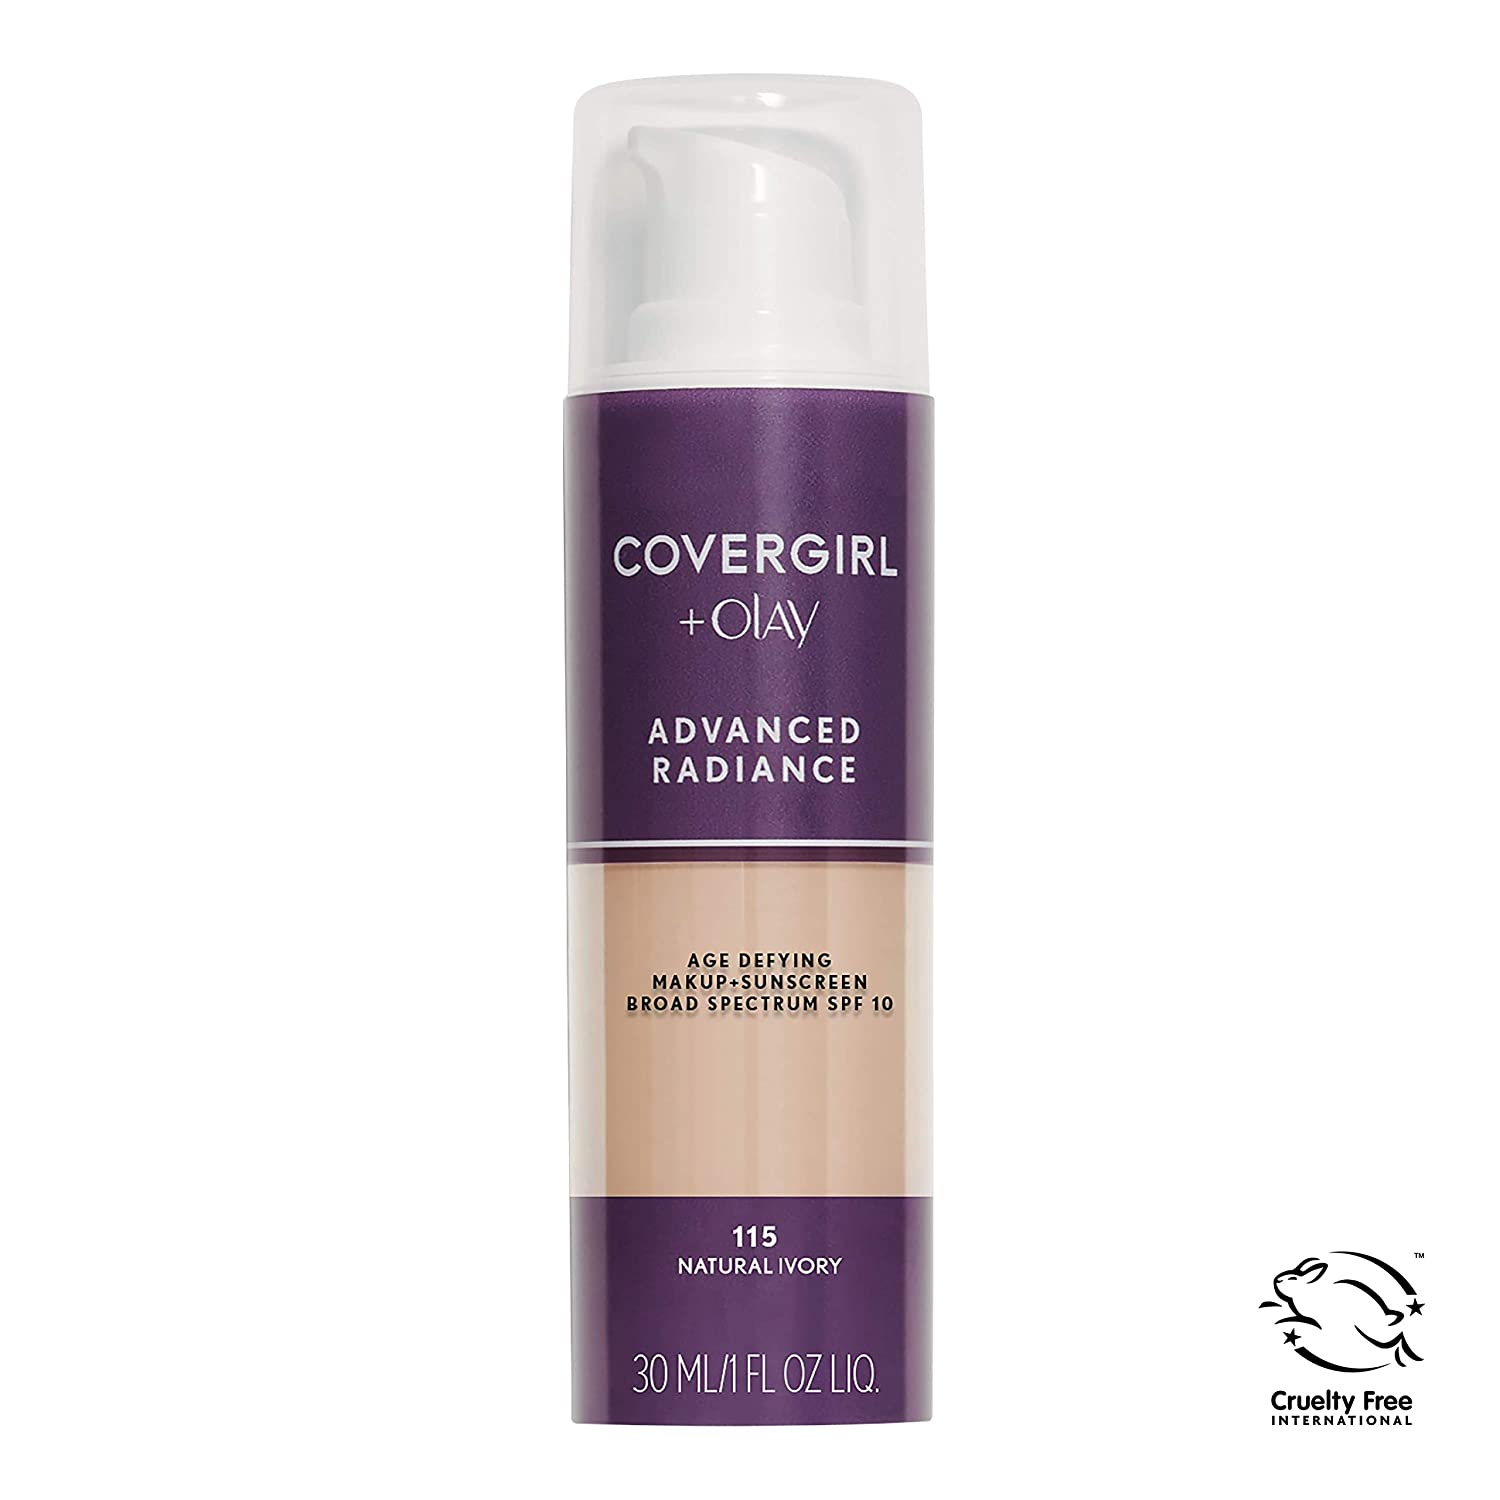 COVERGIRL Advanced Radiance Age Defying Foundation Makeup Natural Ivory, 1 oz (packaging may vary)